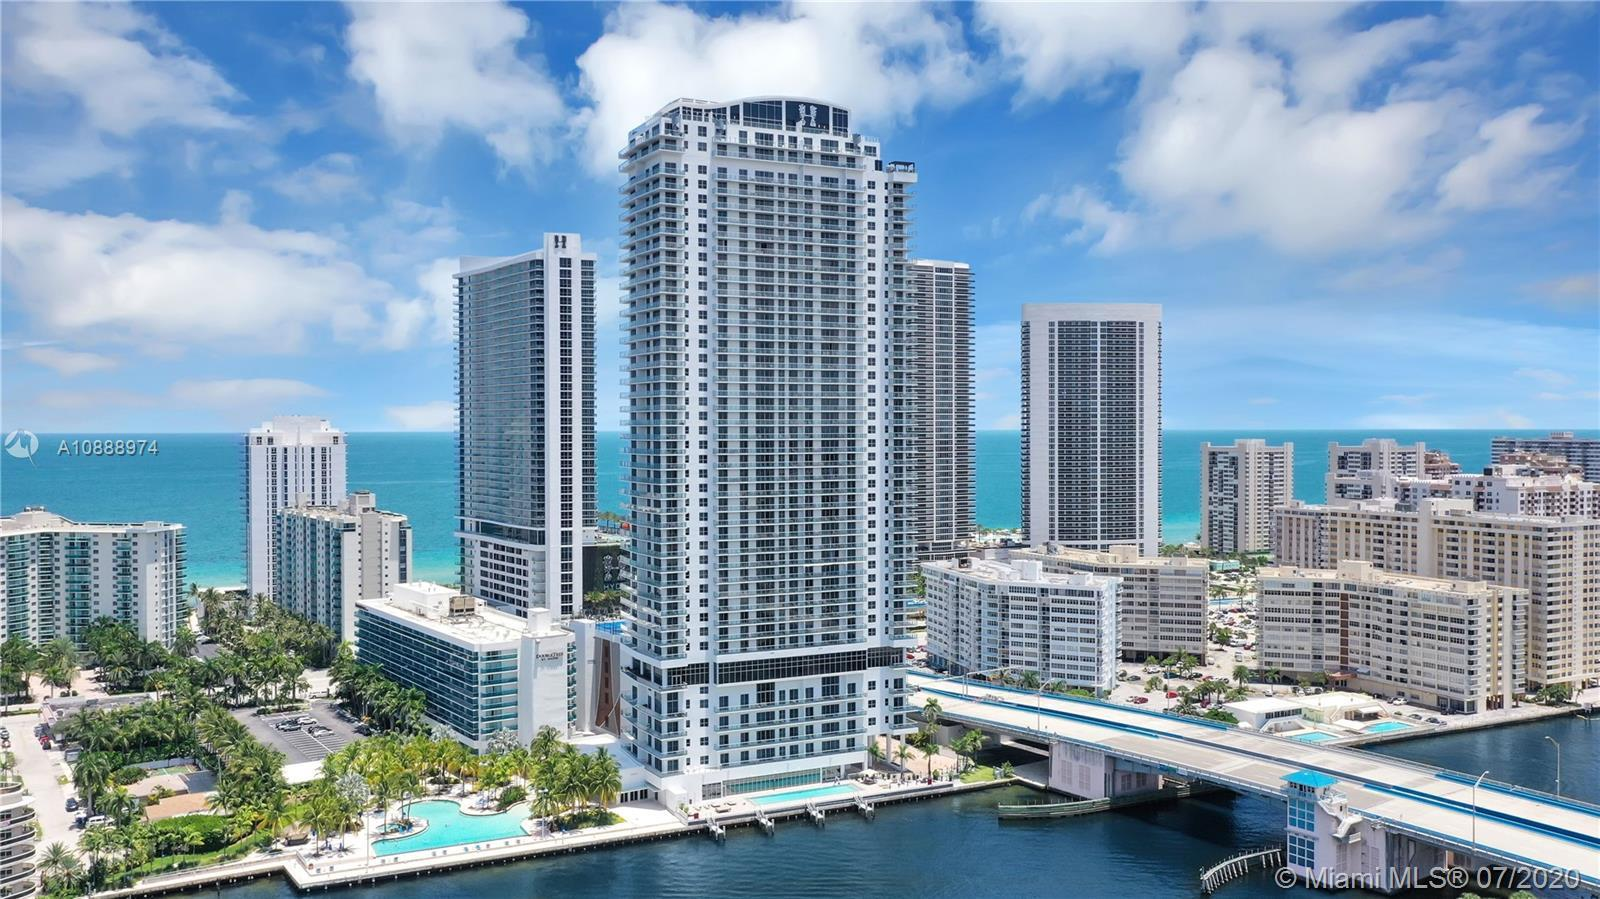 New and spectacular condo for sale, 3 bedrooms and 2.5 bathrooms. Corner unit with beautiful ocean,